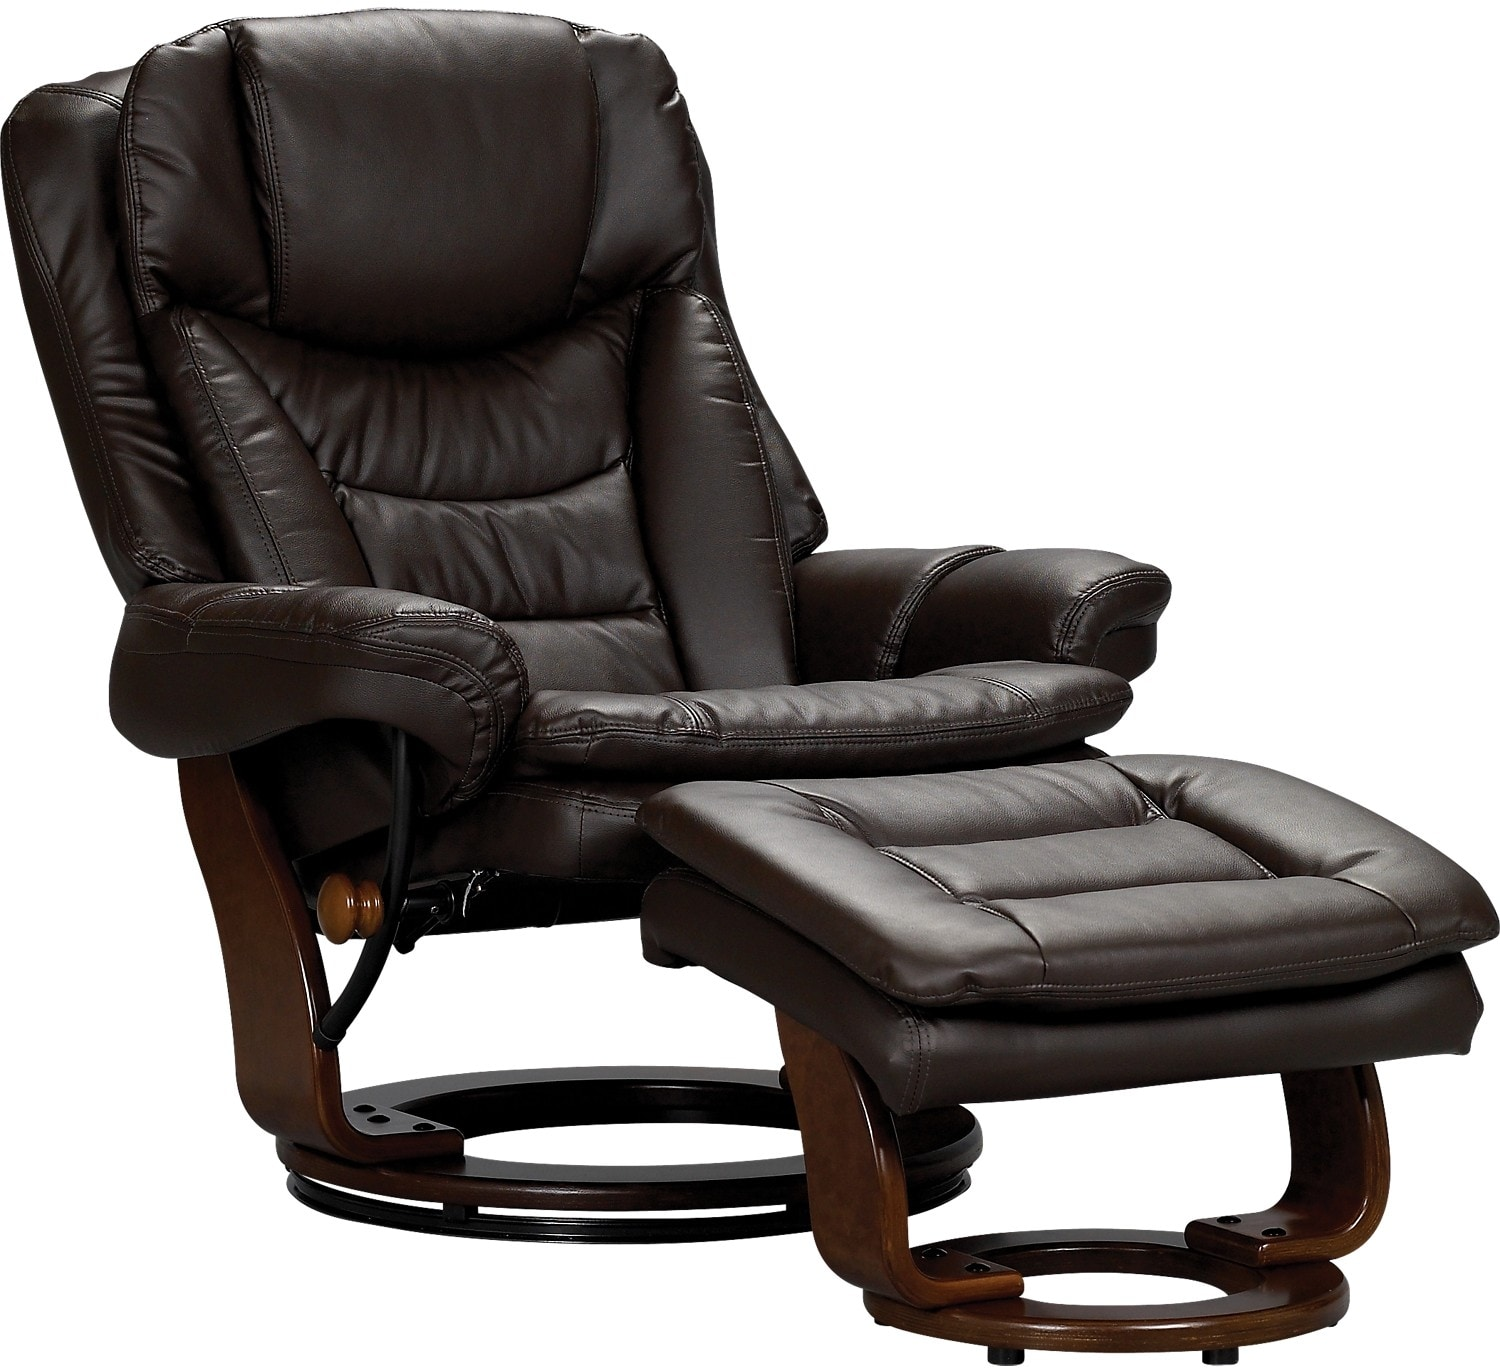 Flynn bonded leather reclining chair united furniture for Chair chair chair